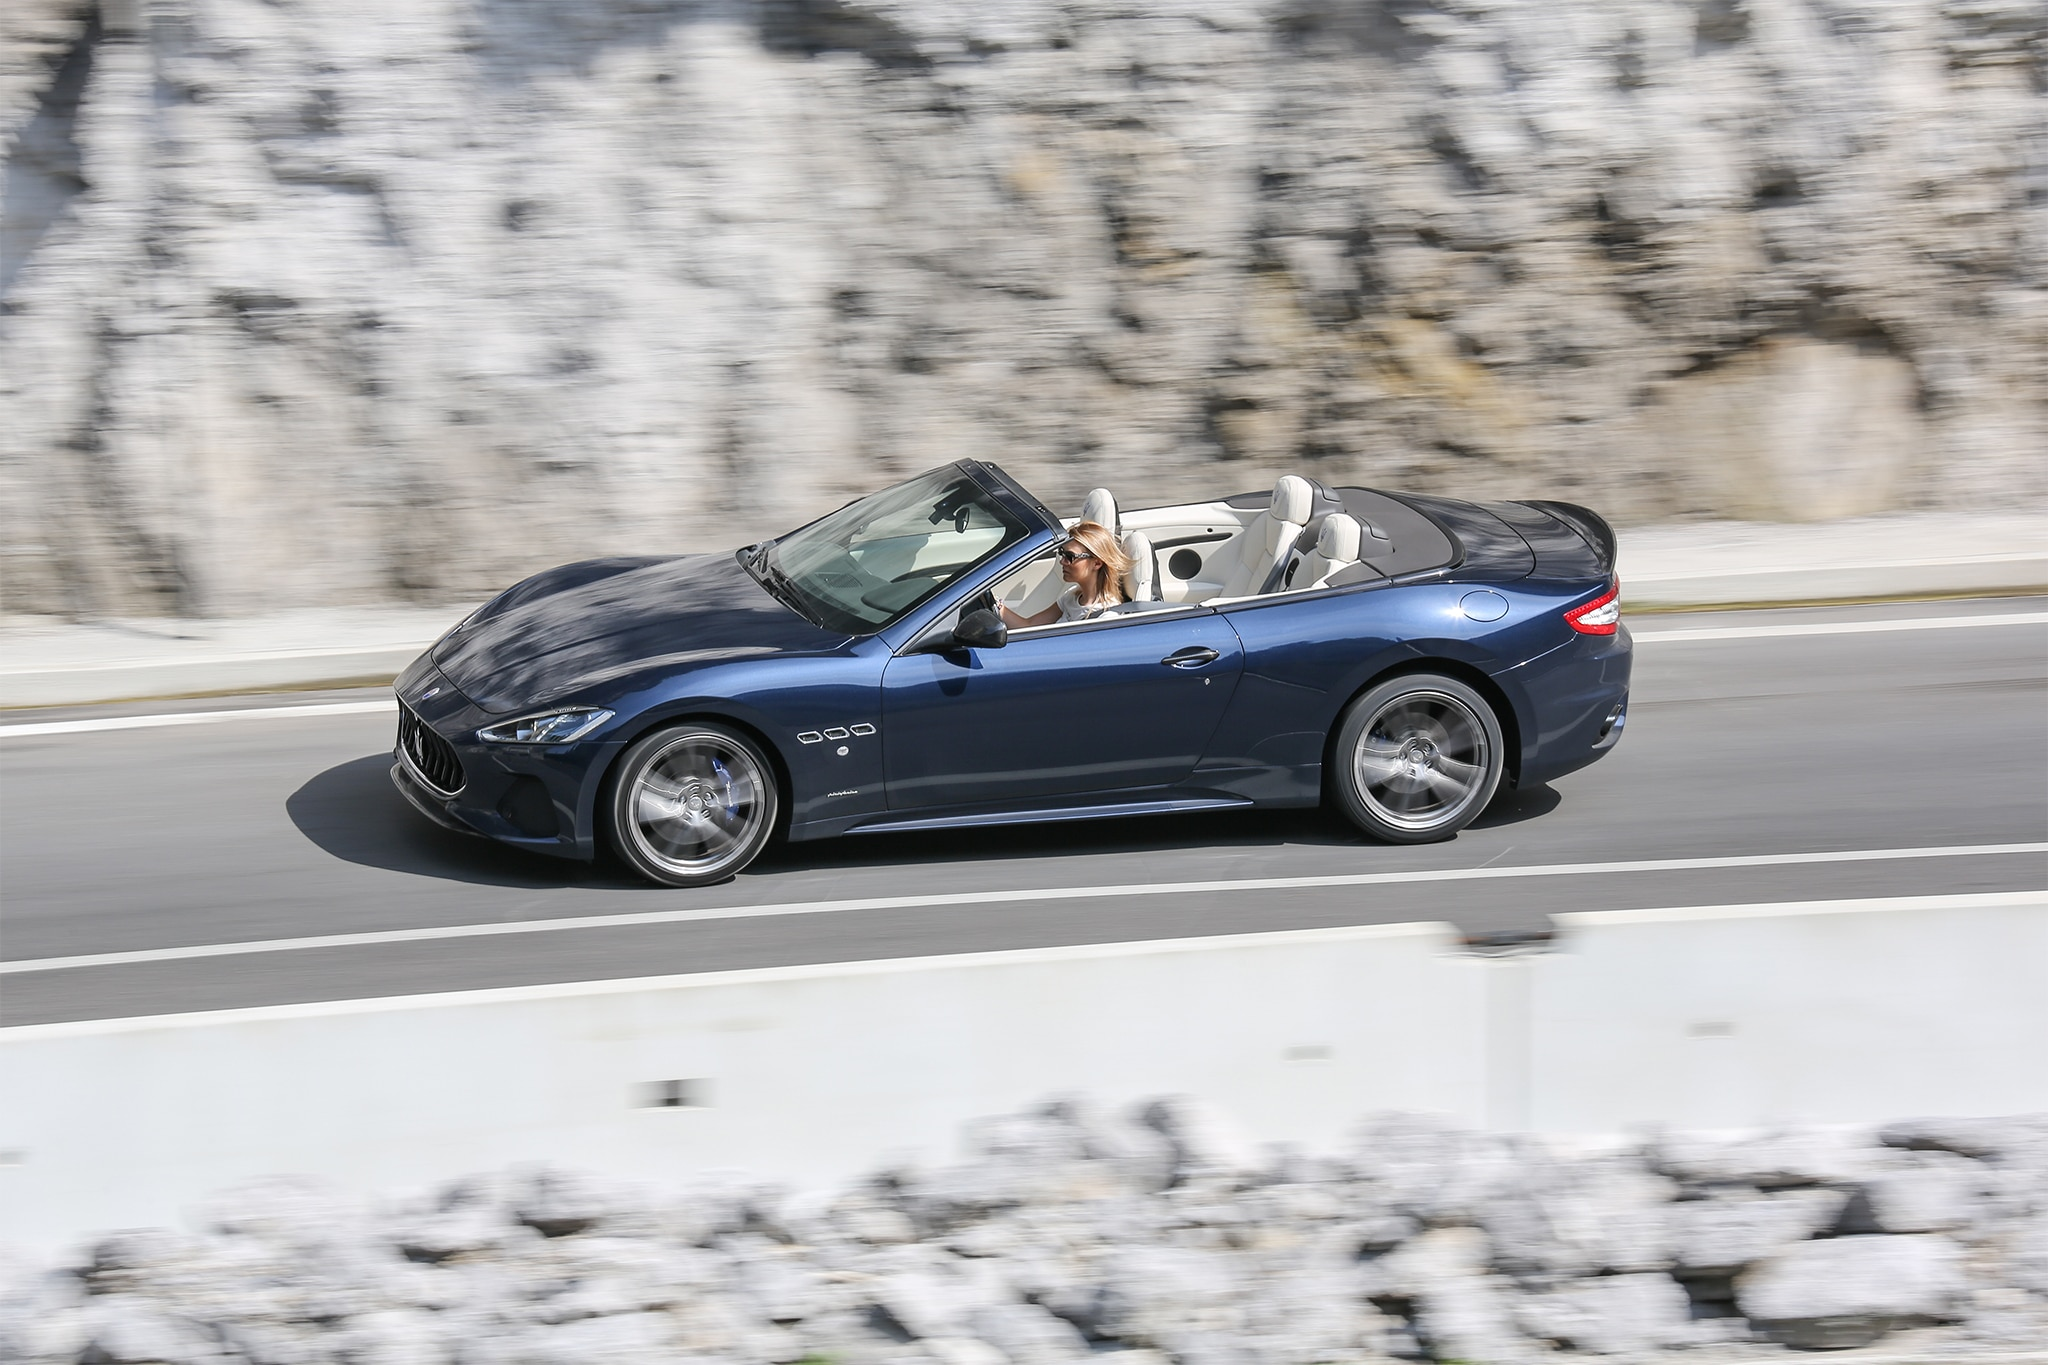 2018-Maserati-GranCabrio-Sport-side-profile-in-motion-01 Interesting Info About Maserati Spyder for Sale with Breathtaking Photos Cars Review